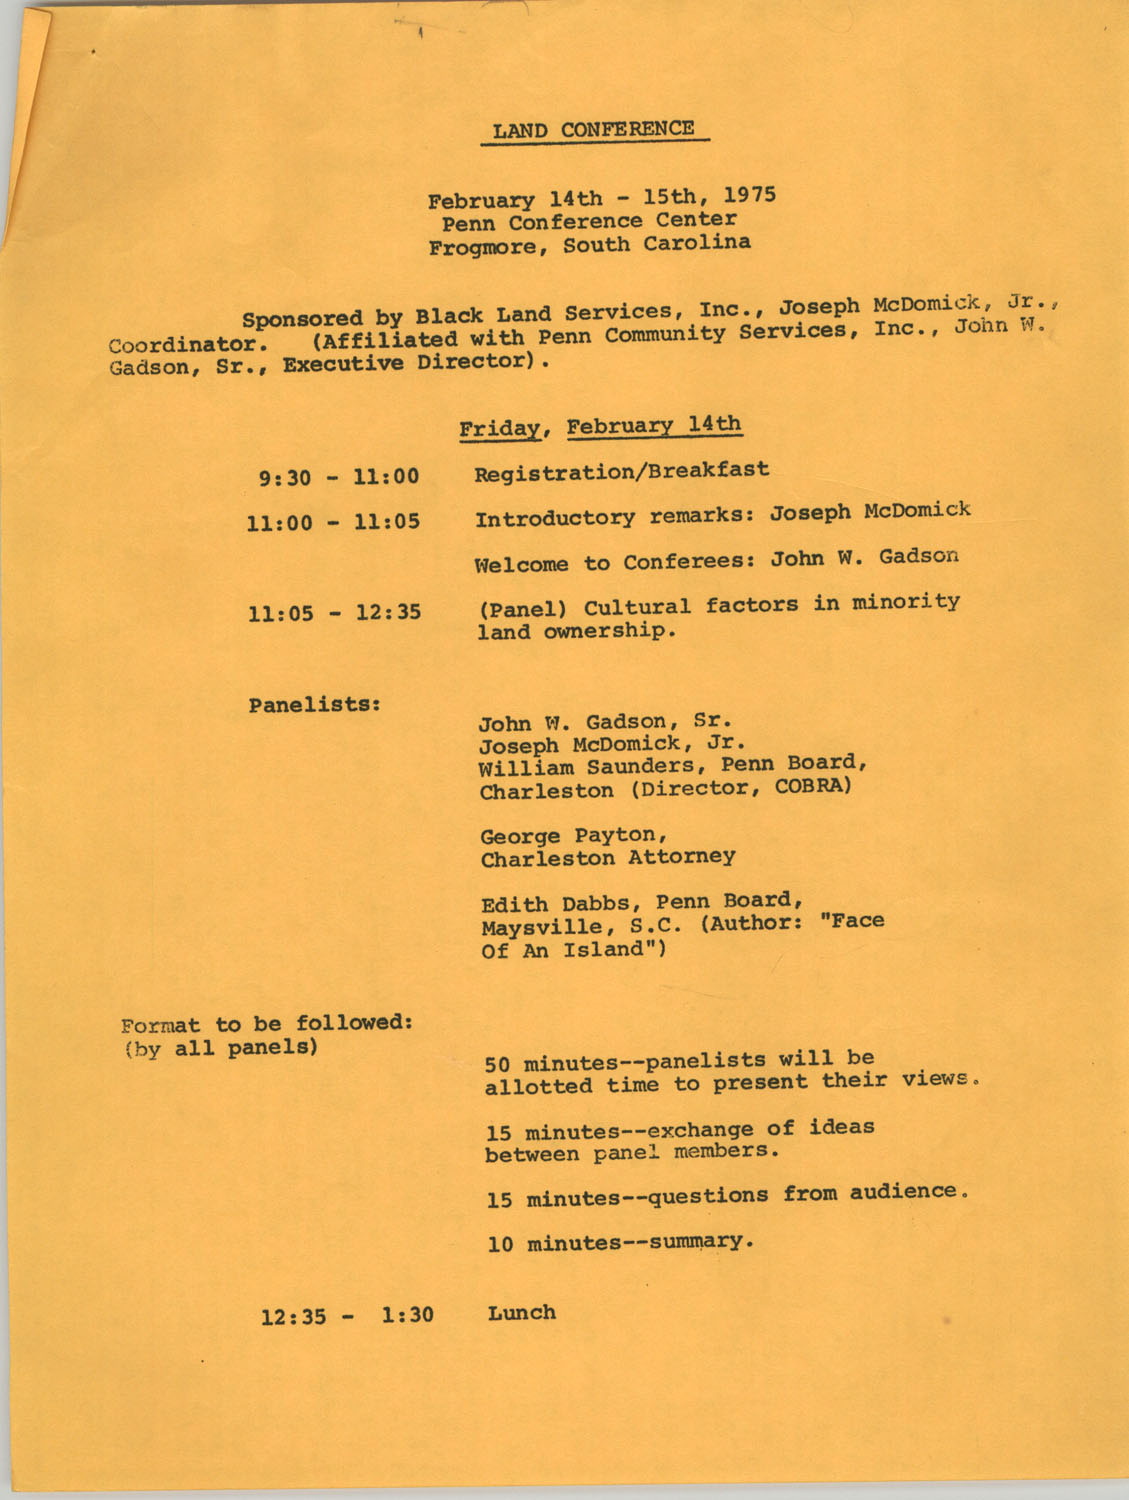 Land Conference, February 14th and 15th, 1975